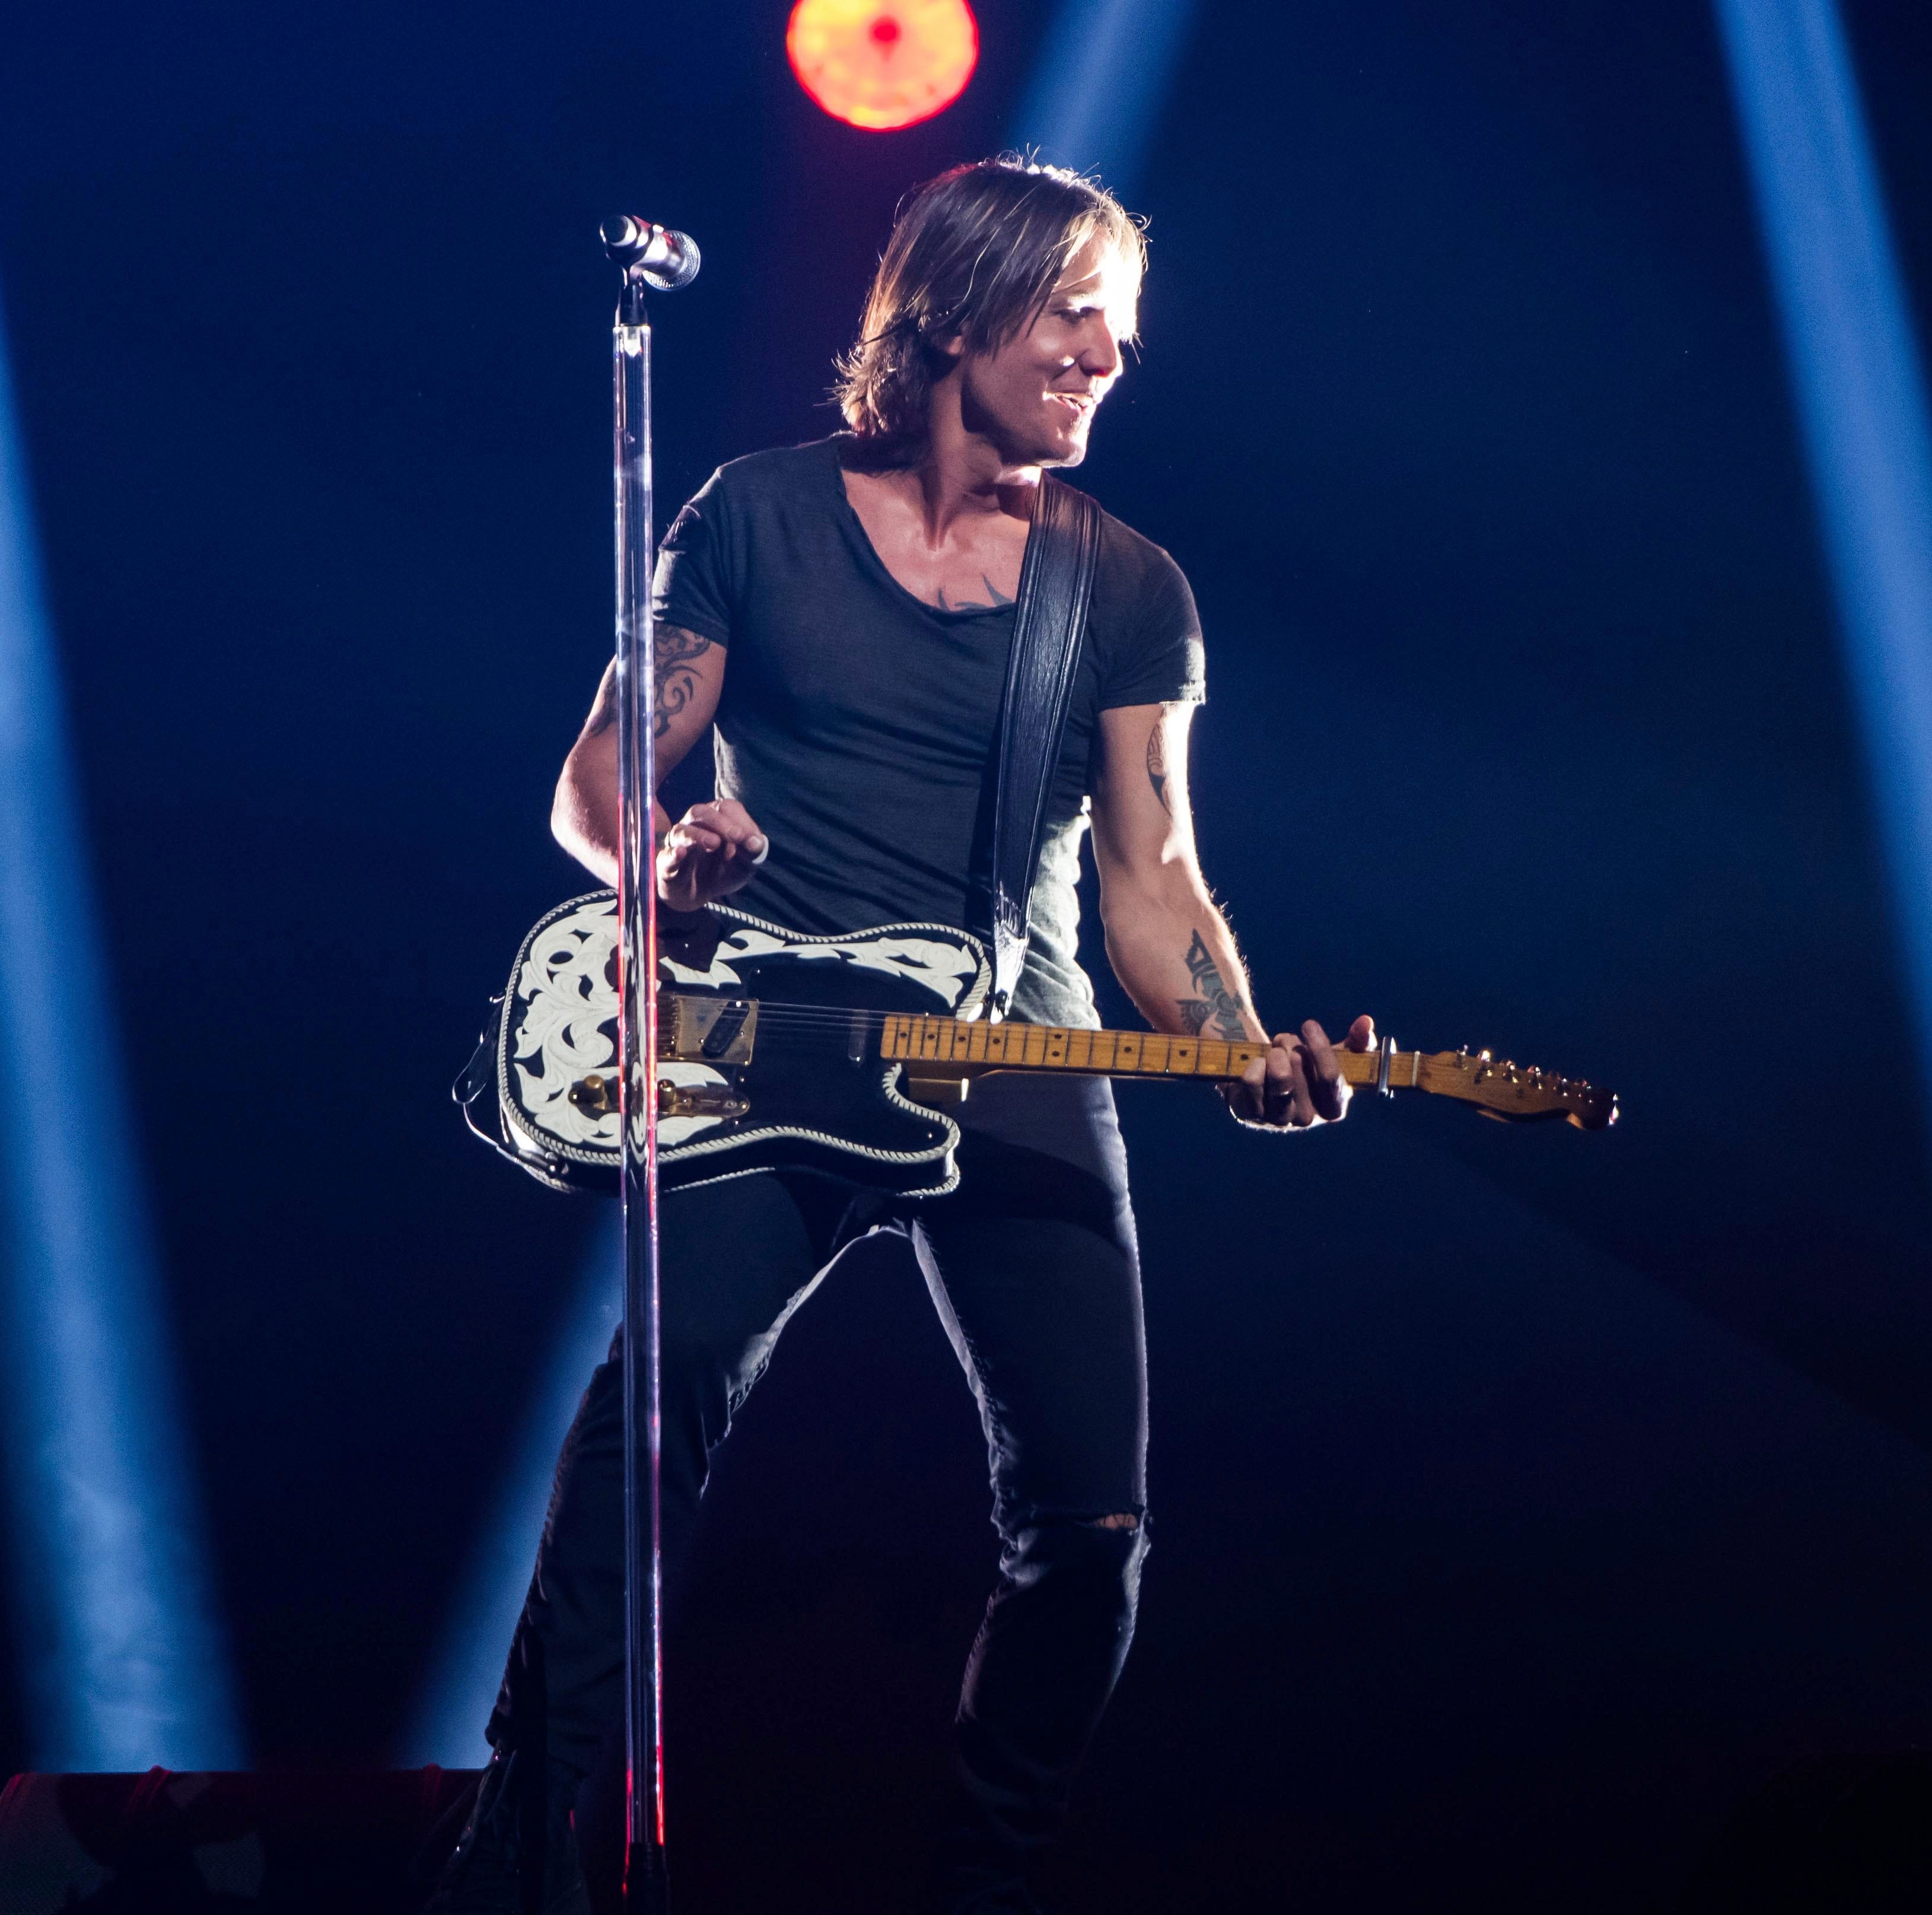 SunFest music lineup includes Keith Urban; Ludacris; Garbage; Earth, Wind & Fire; B-52s